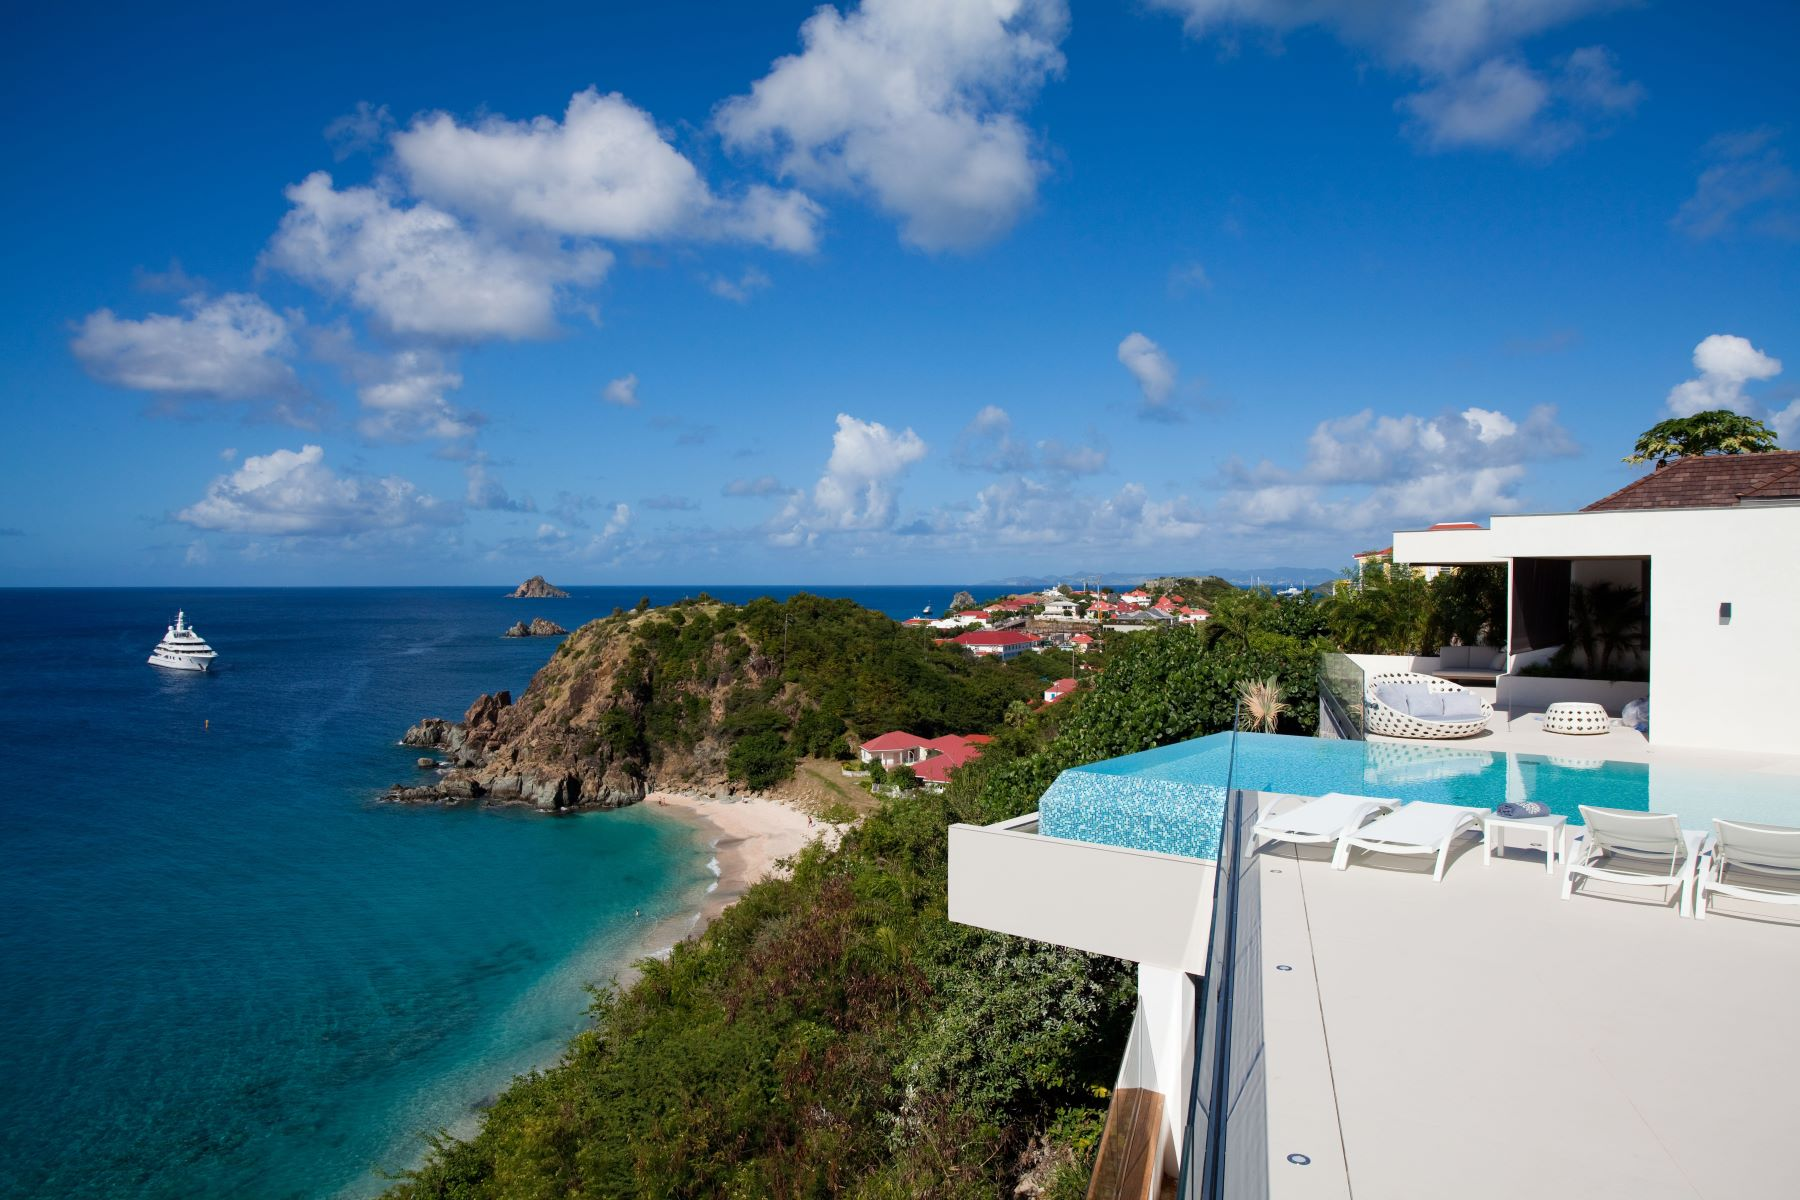 Single Family Home for Sale at Villa Vitti Lurin Lurin, Cities In St. Barthelemy 97133 St. Barthelemy